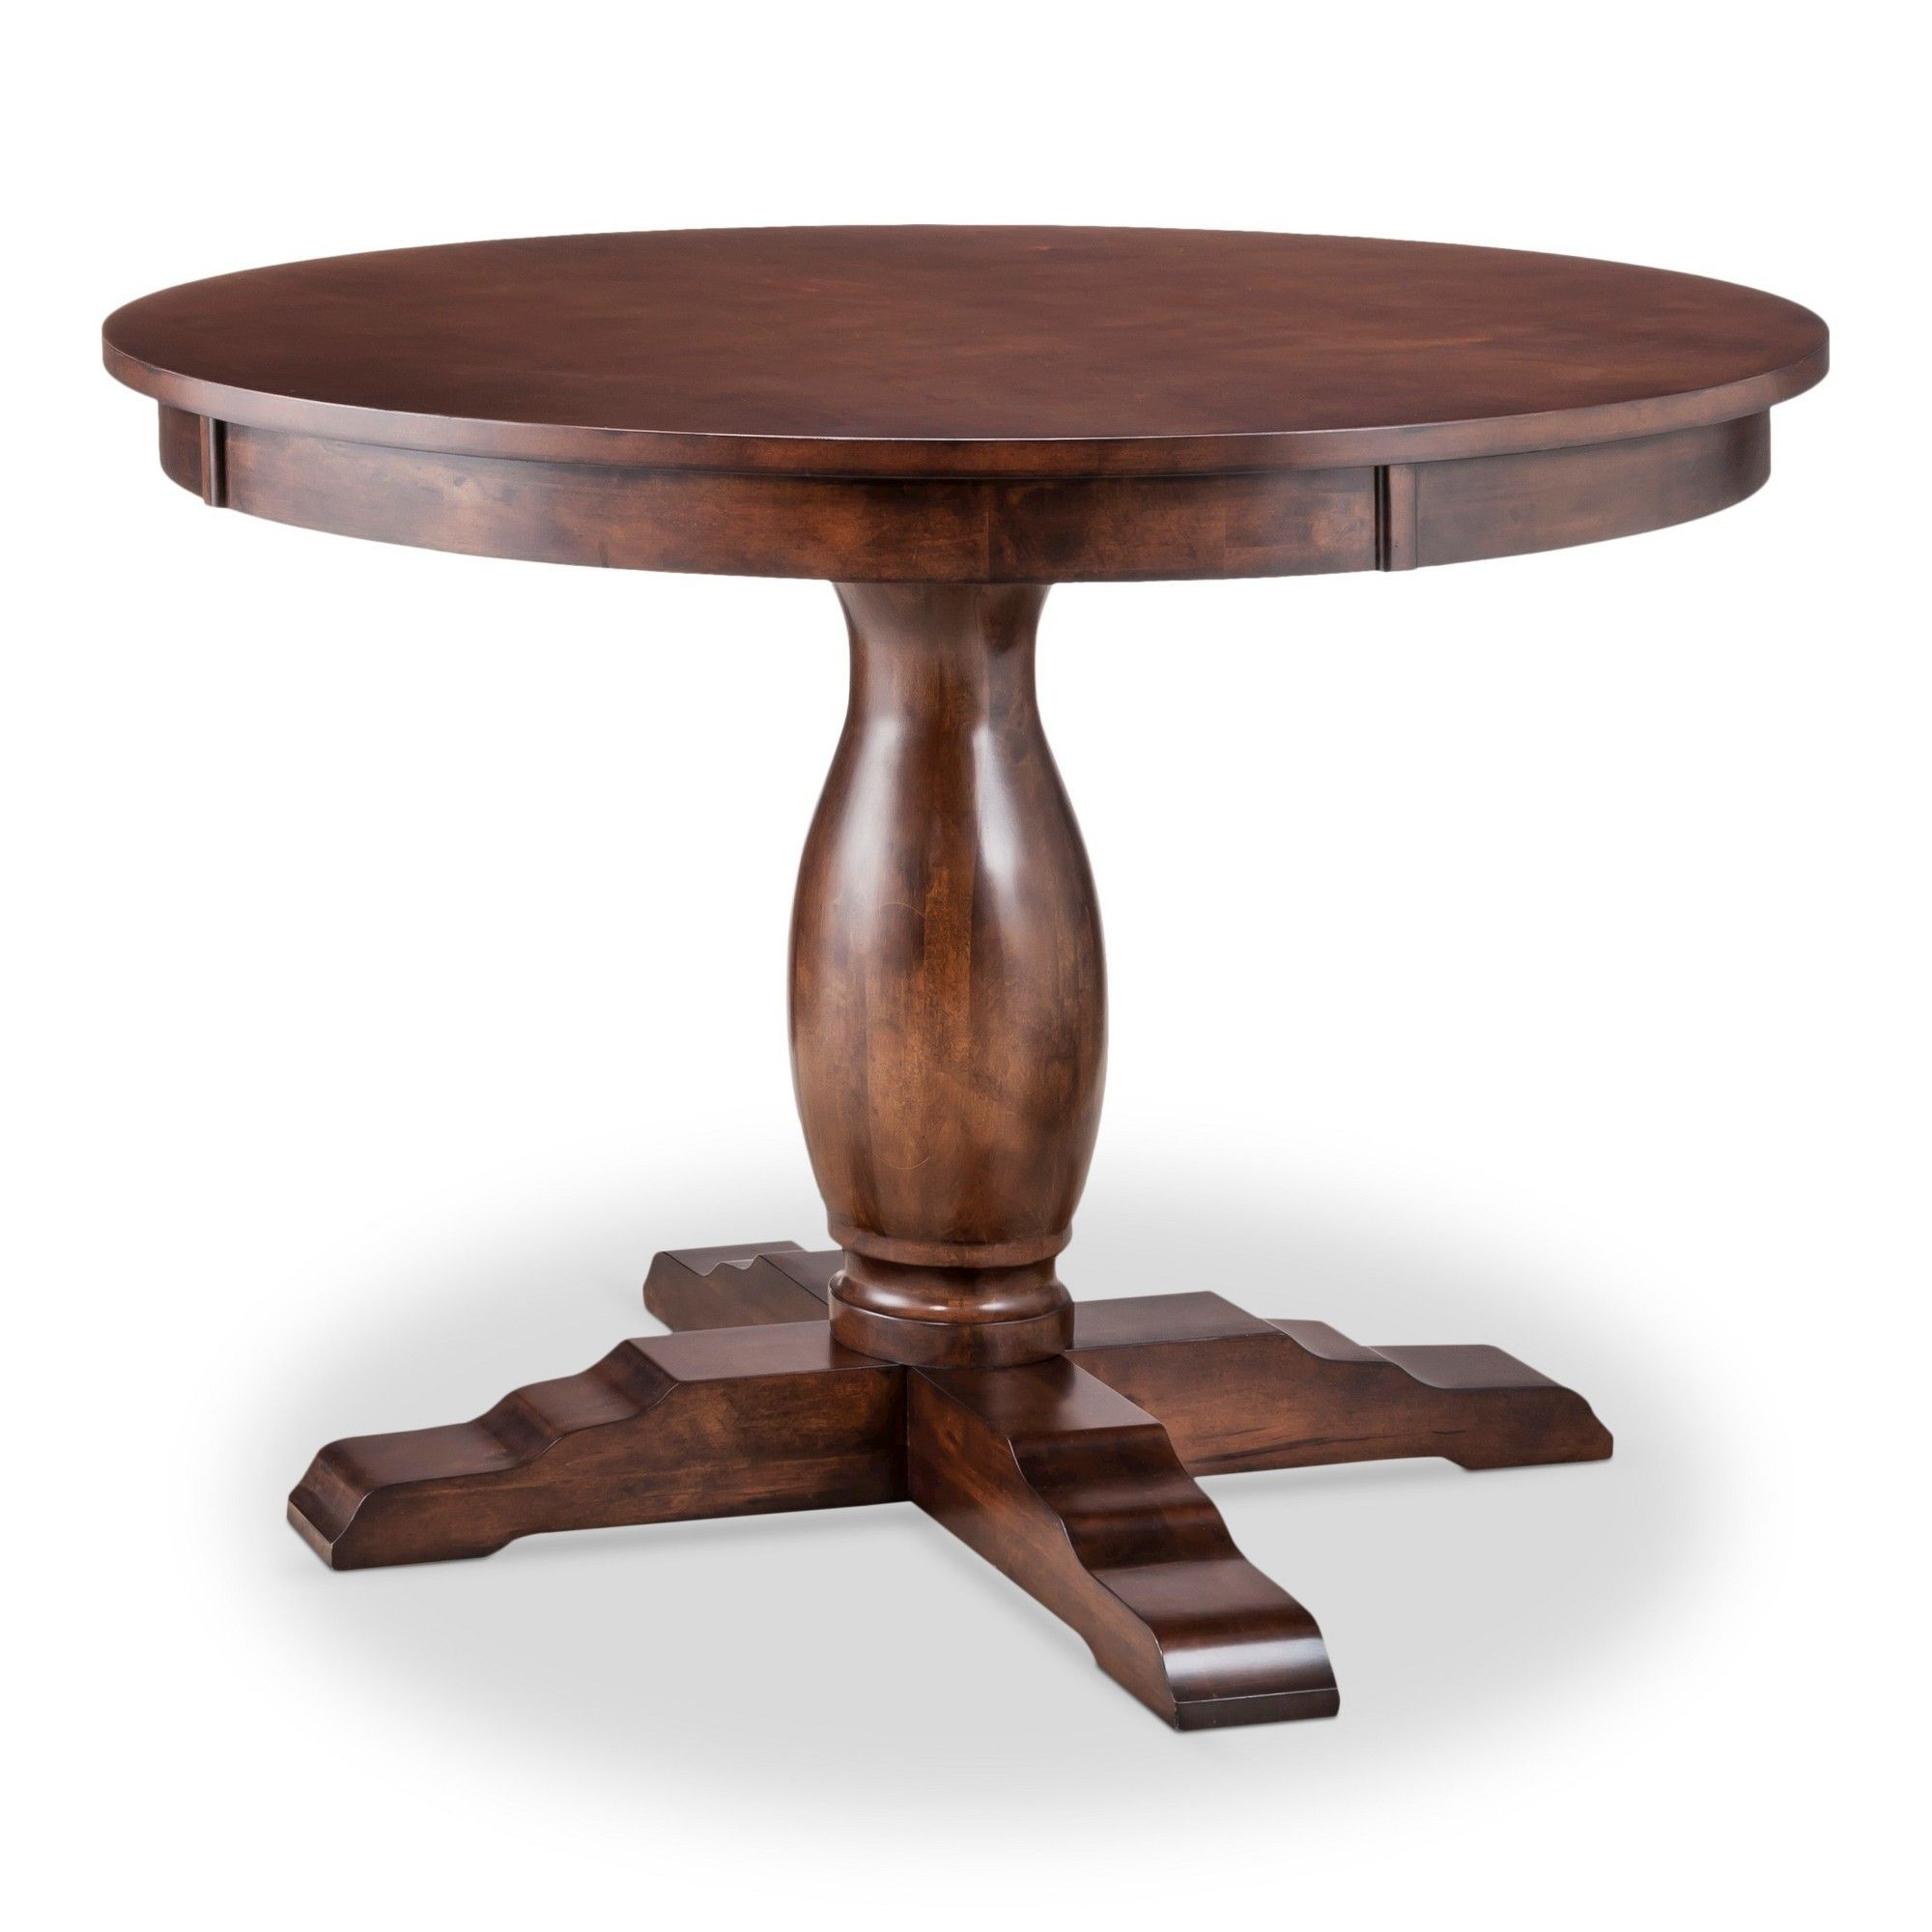 videos transitional mission traditional dining tables osborne available pedestal table kit kits now wood